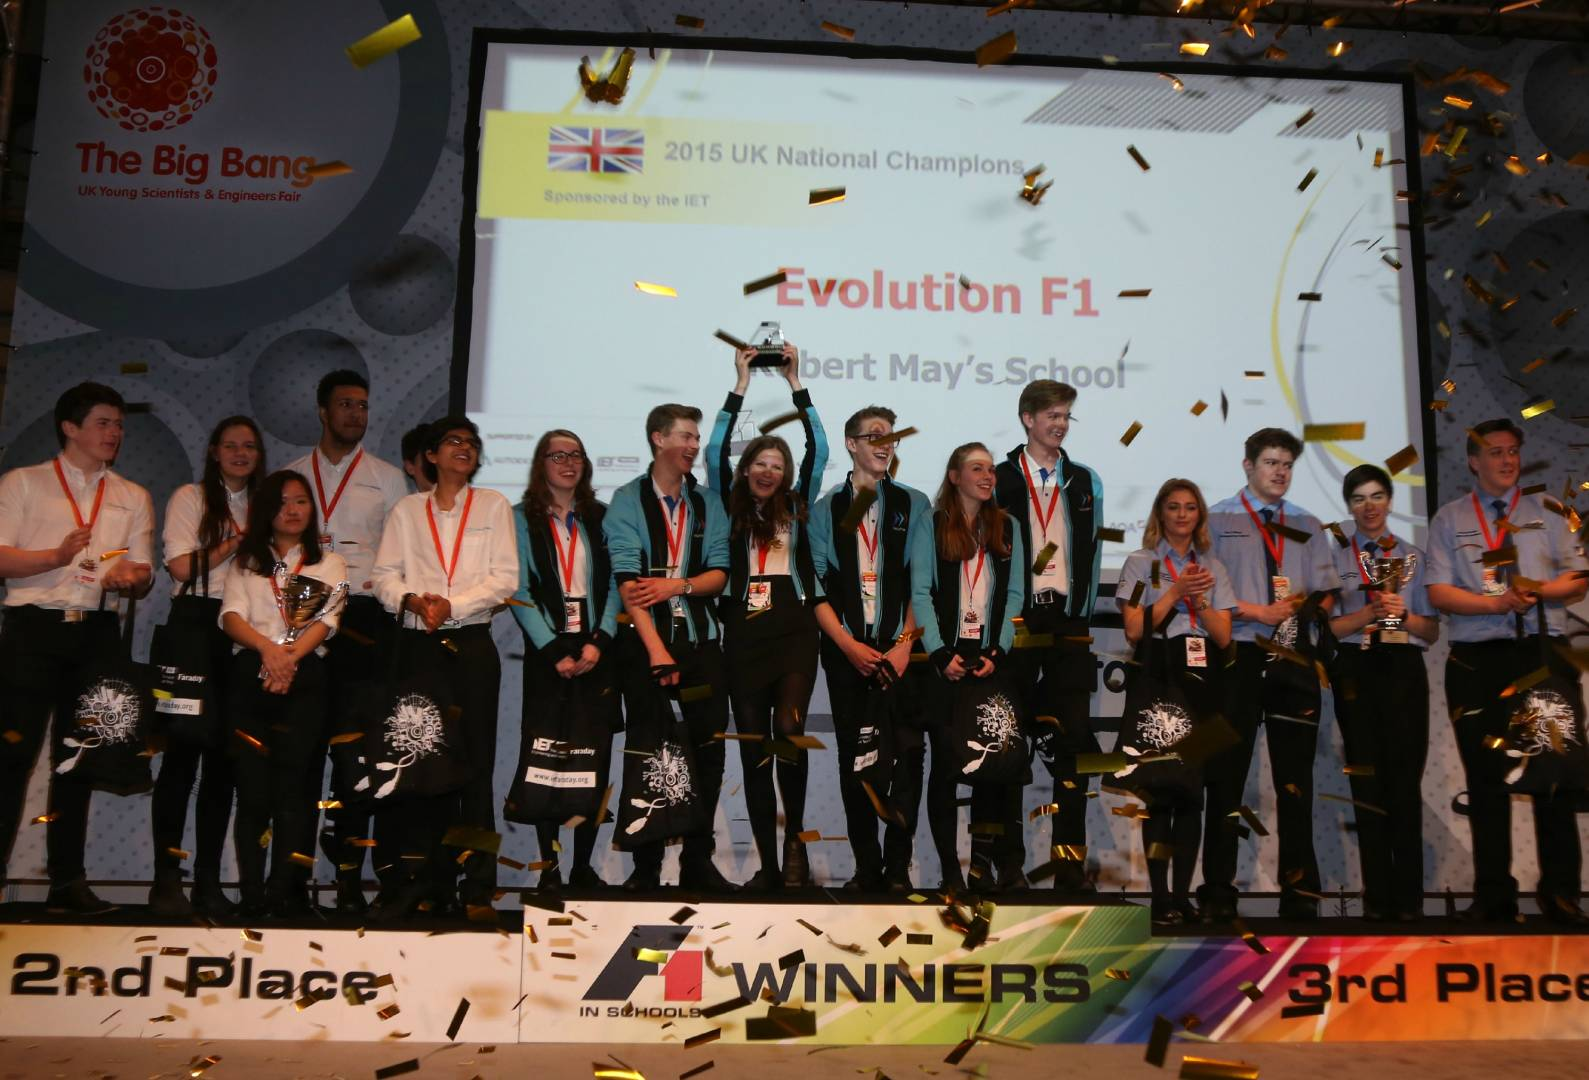 Evolution F1 crowned UK National Champions 2015